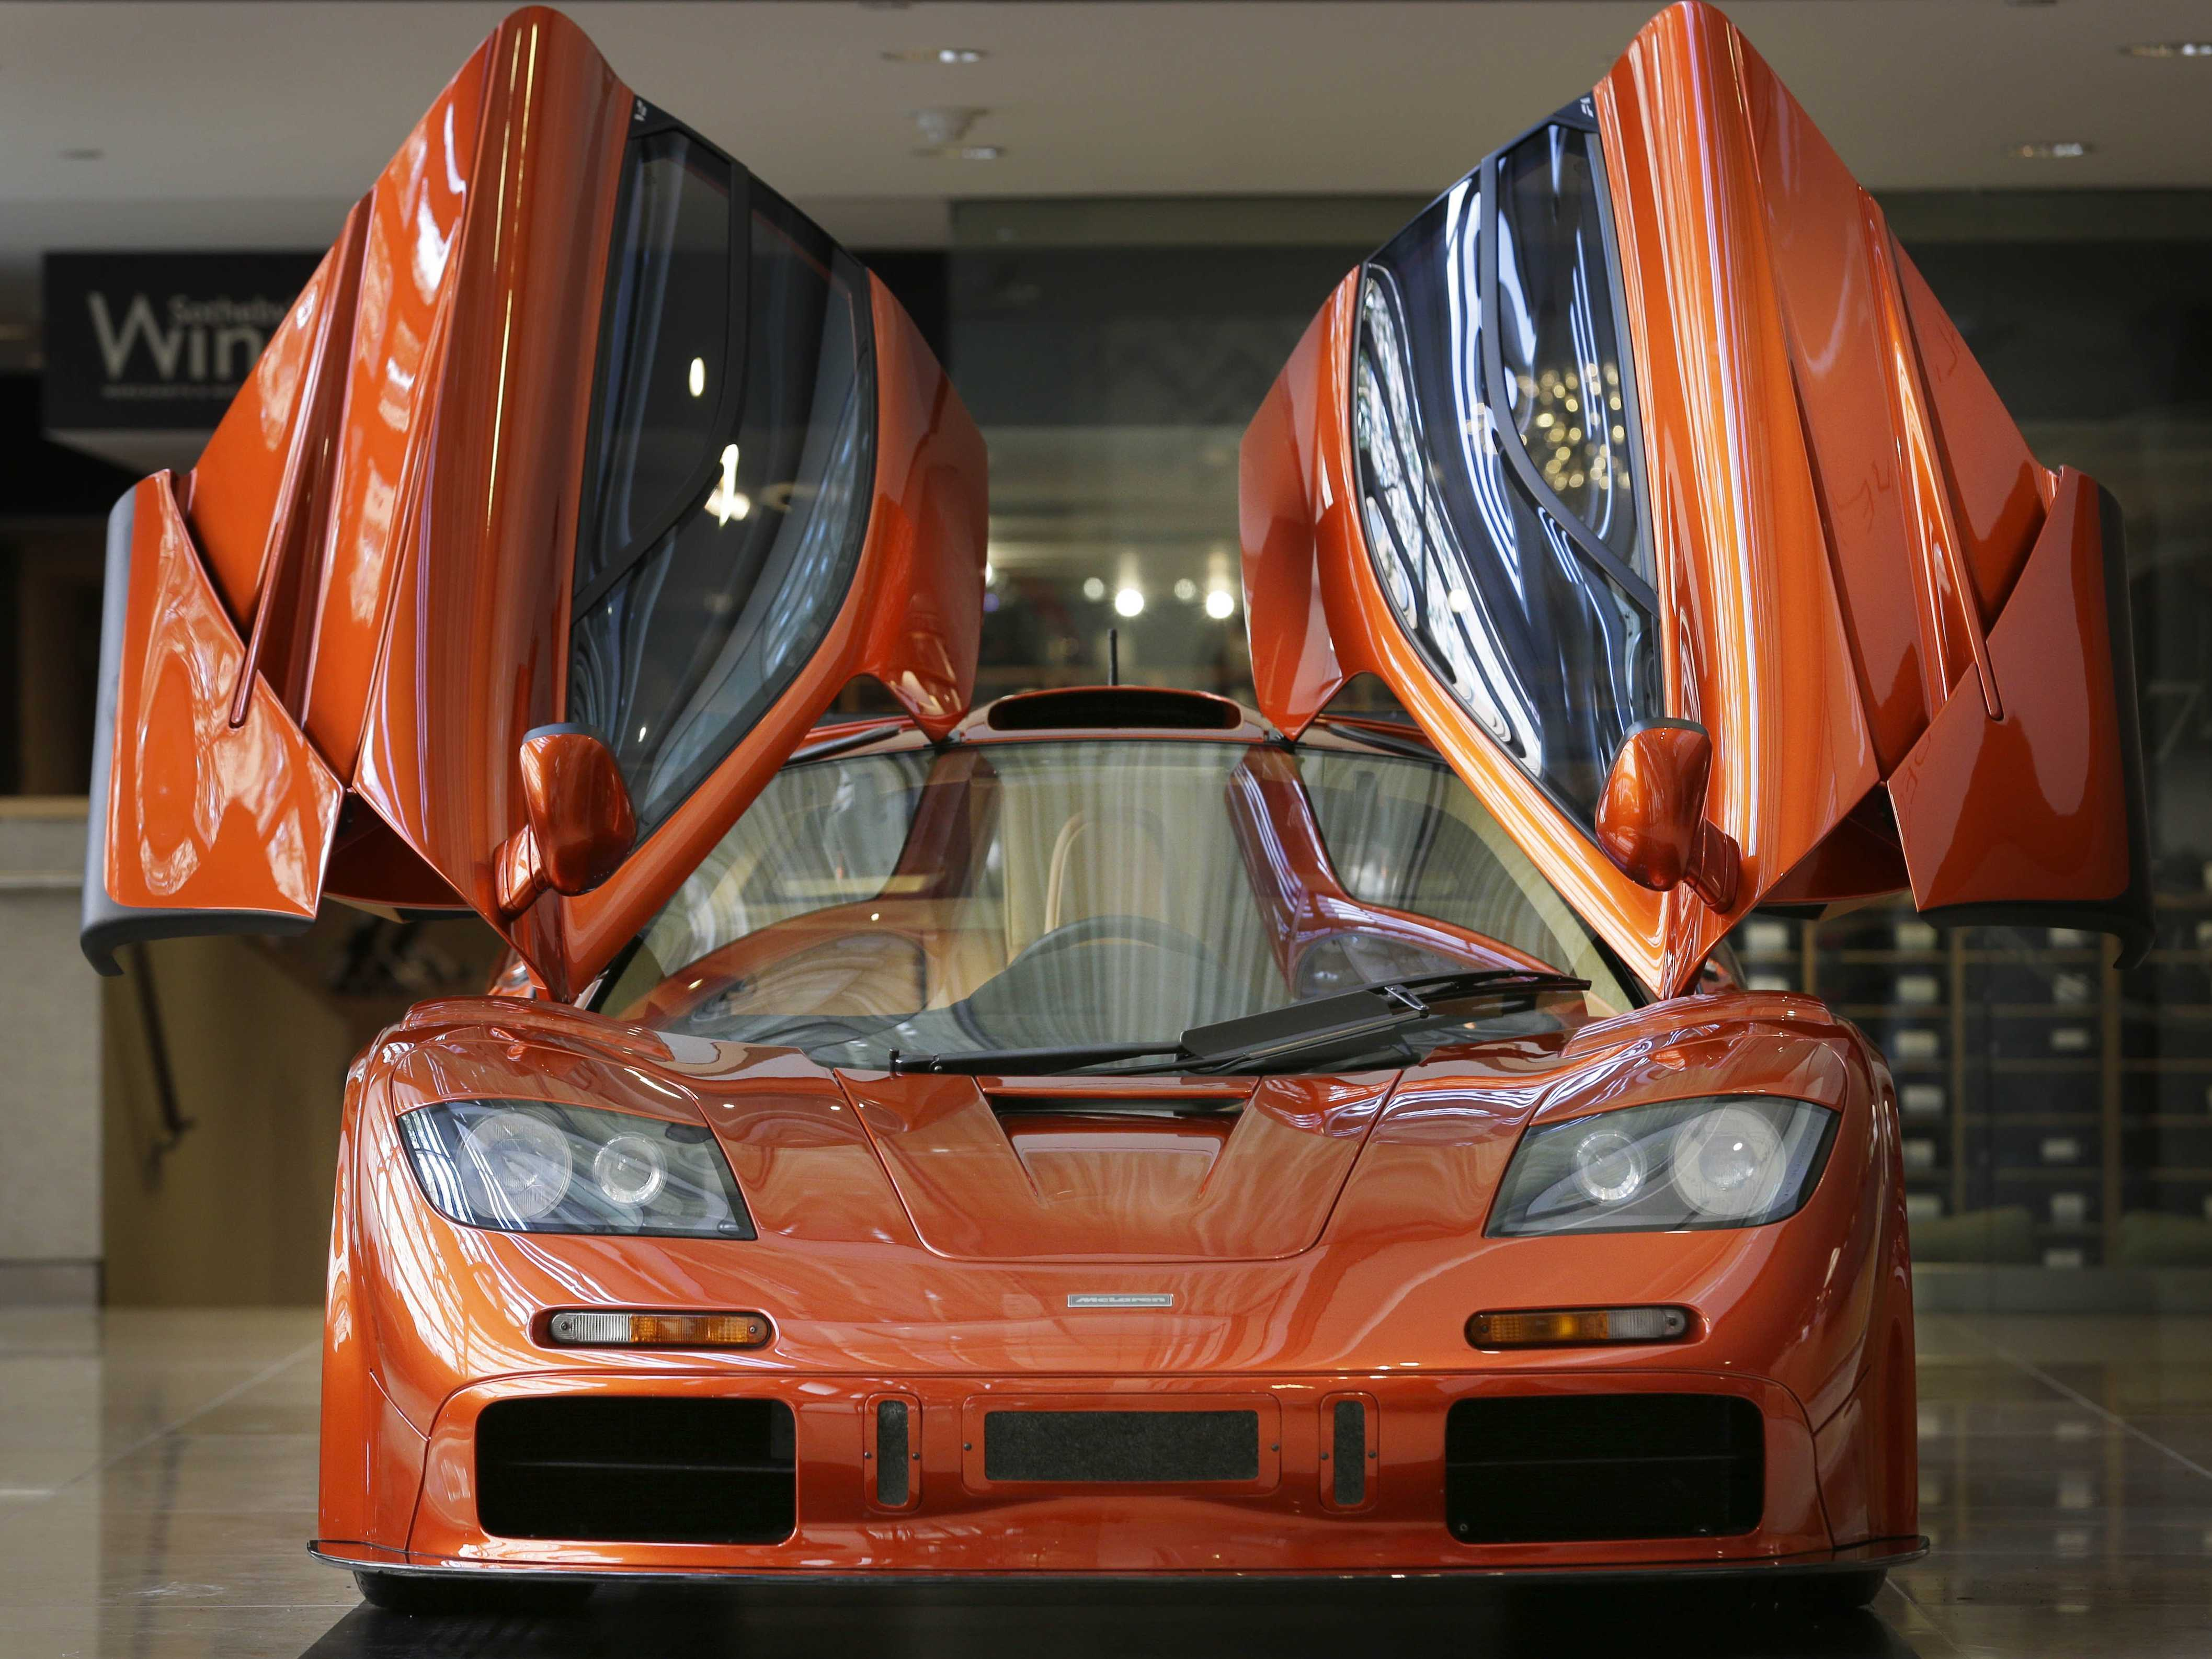 The new owner of a $13.75 million McLaren F1 is reportedly driving it around town - Business Insider